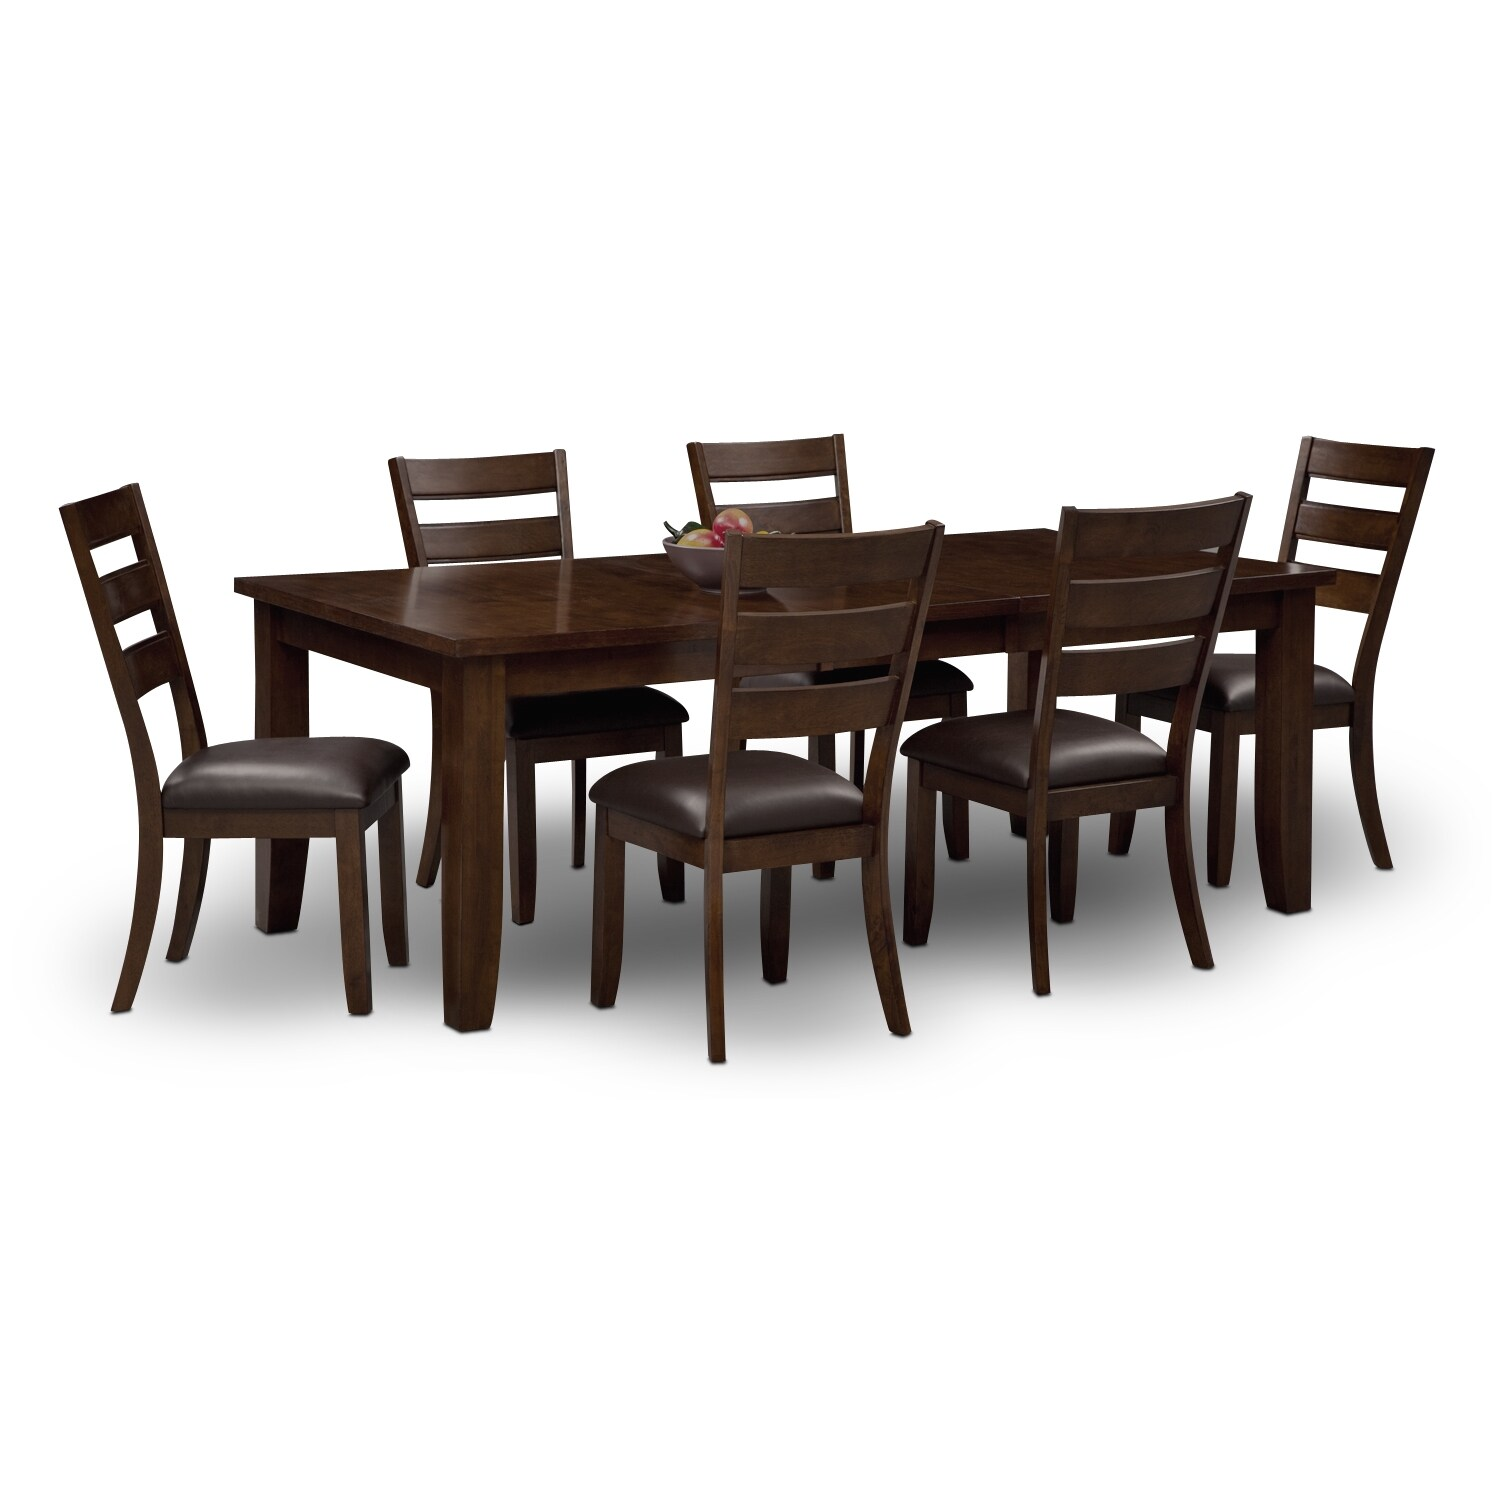 Dining Room Furniture   Abaco Table And 6 Chairs   Brown